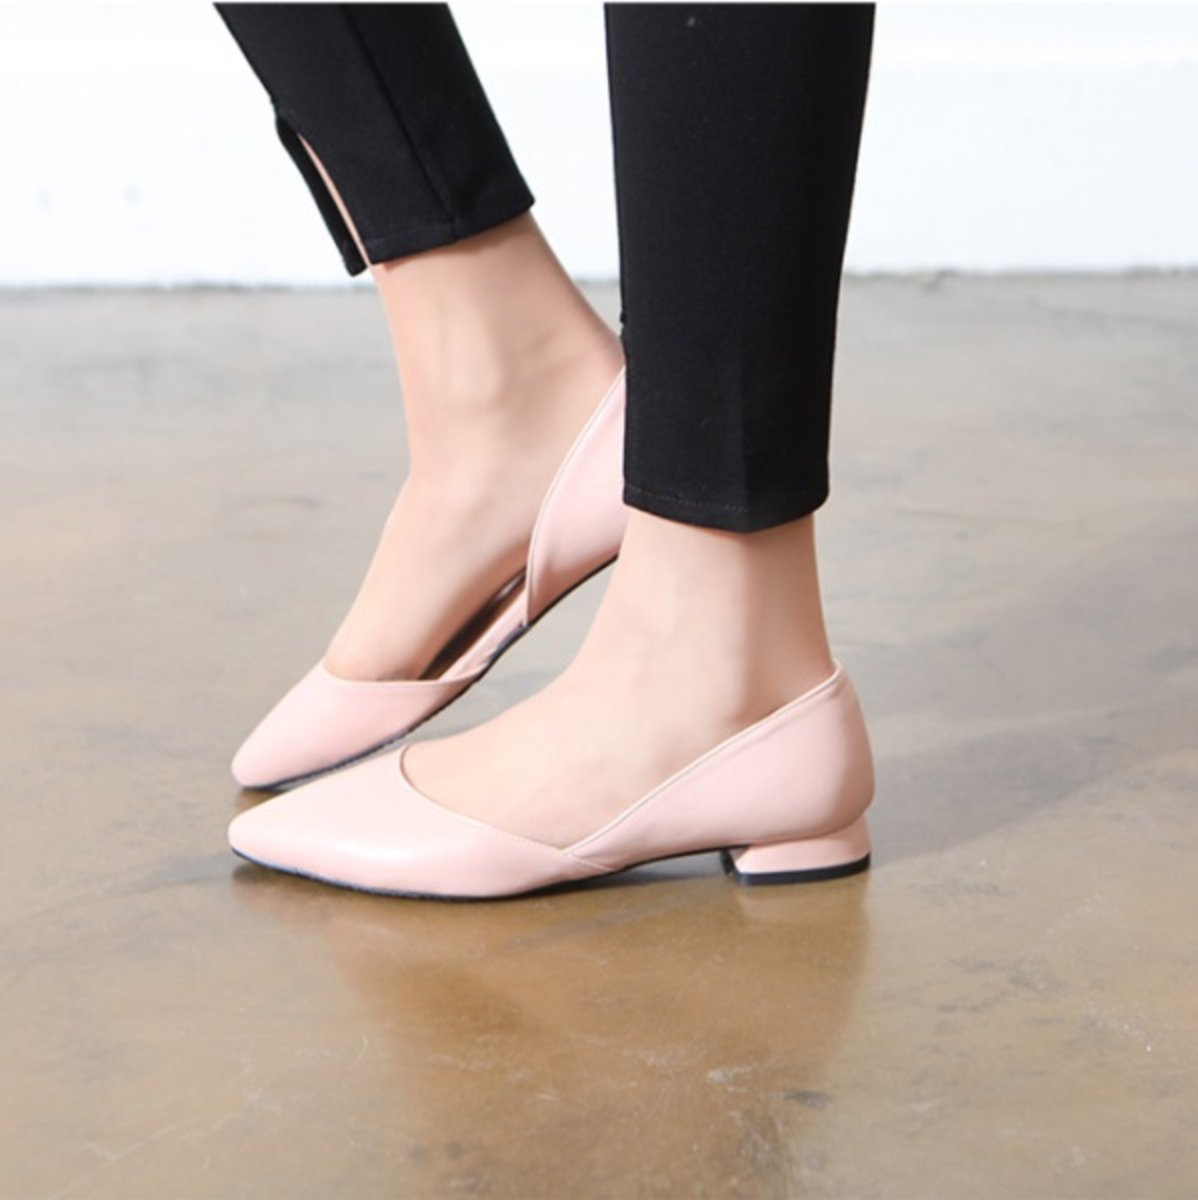 Ollie Office Flat Shoes Hktvmall Online Ping